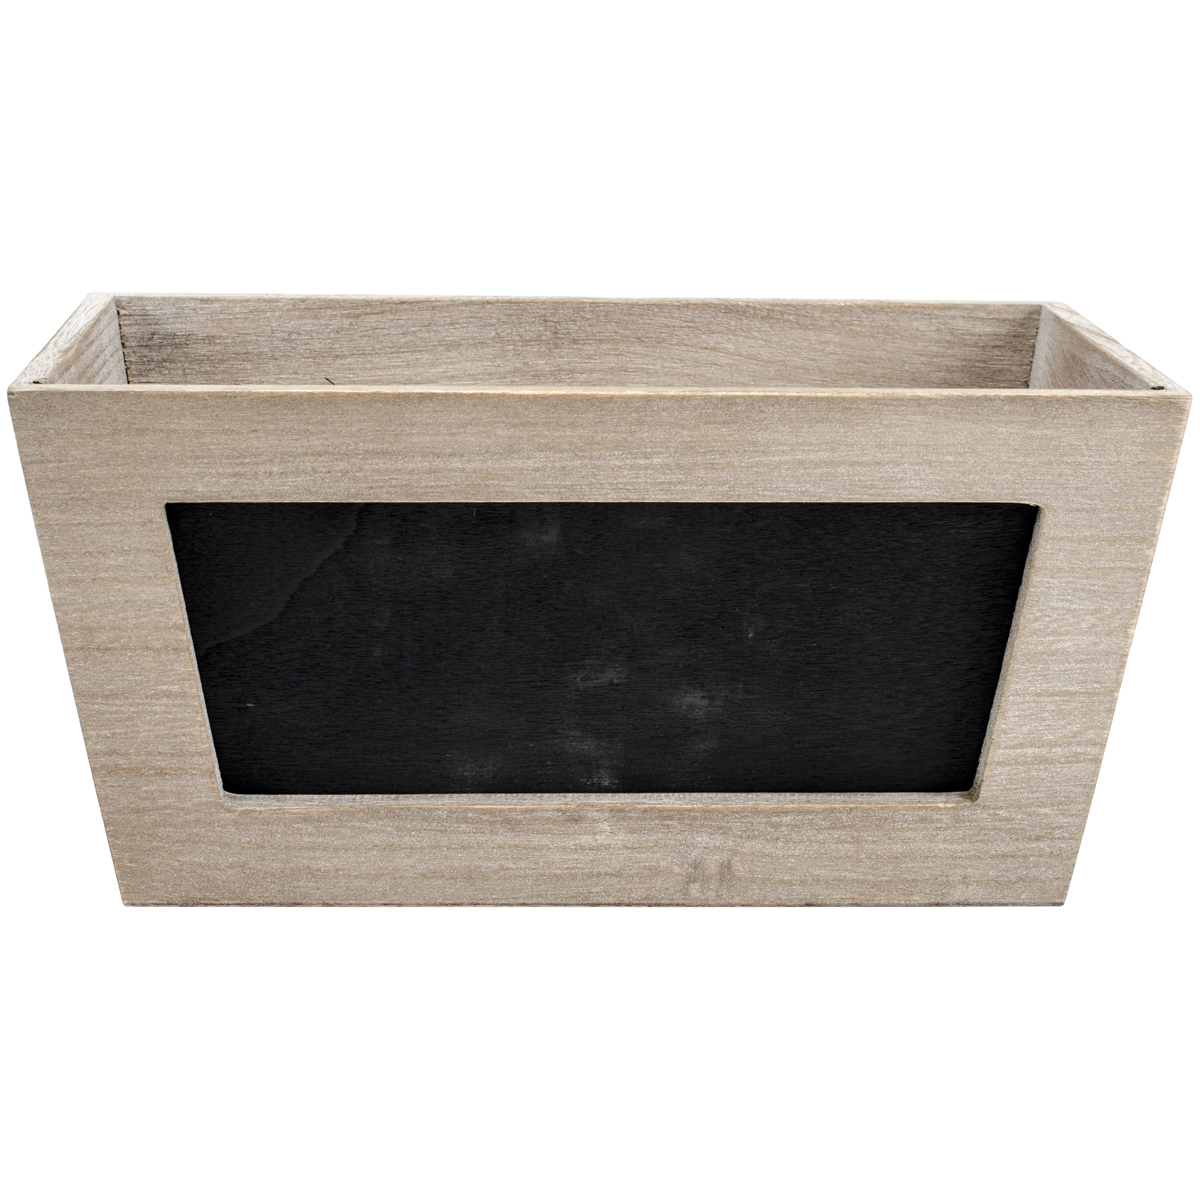 The Media Wooden Chalkboard Planter Weathered